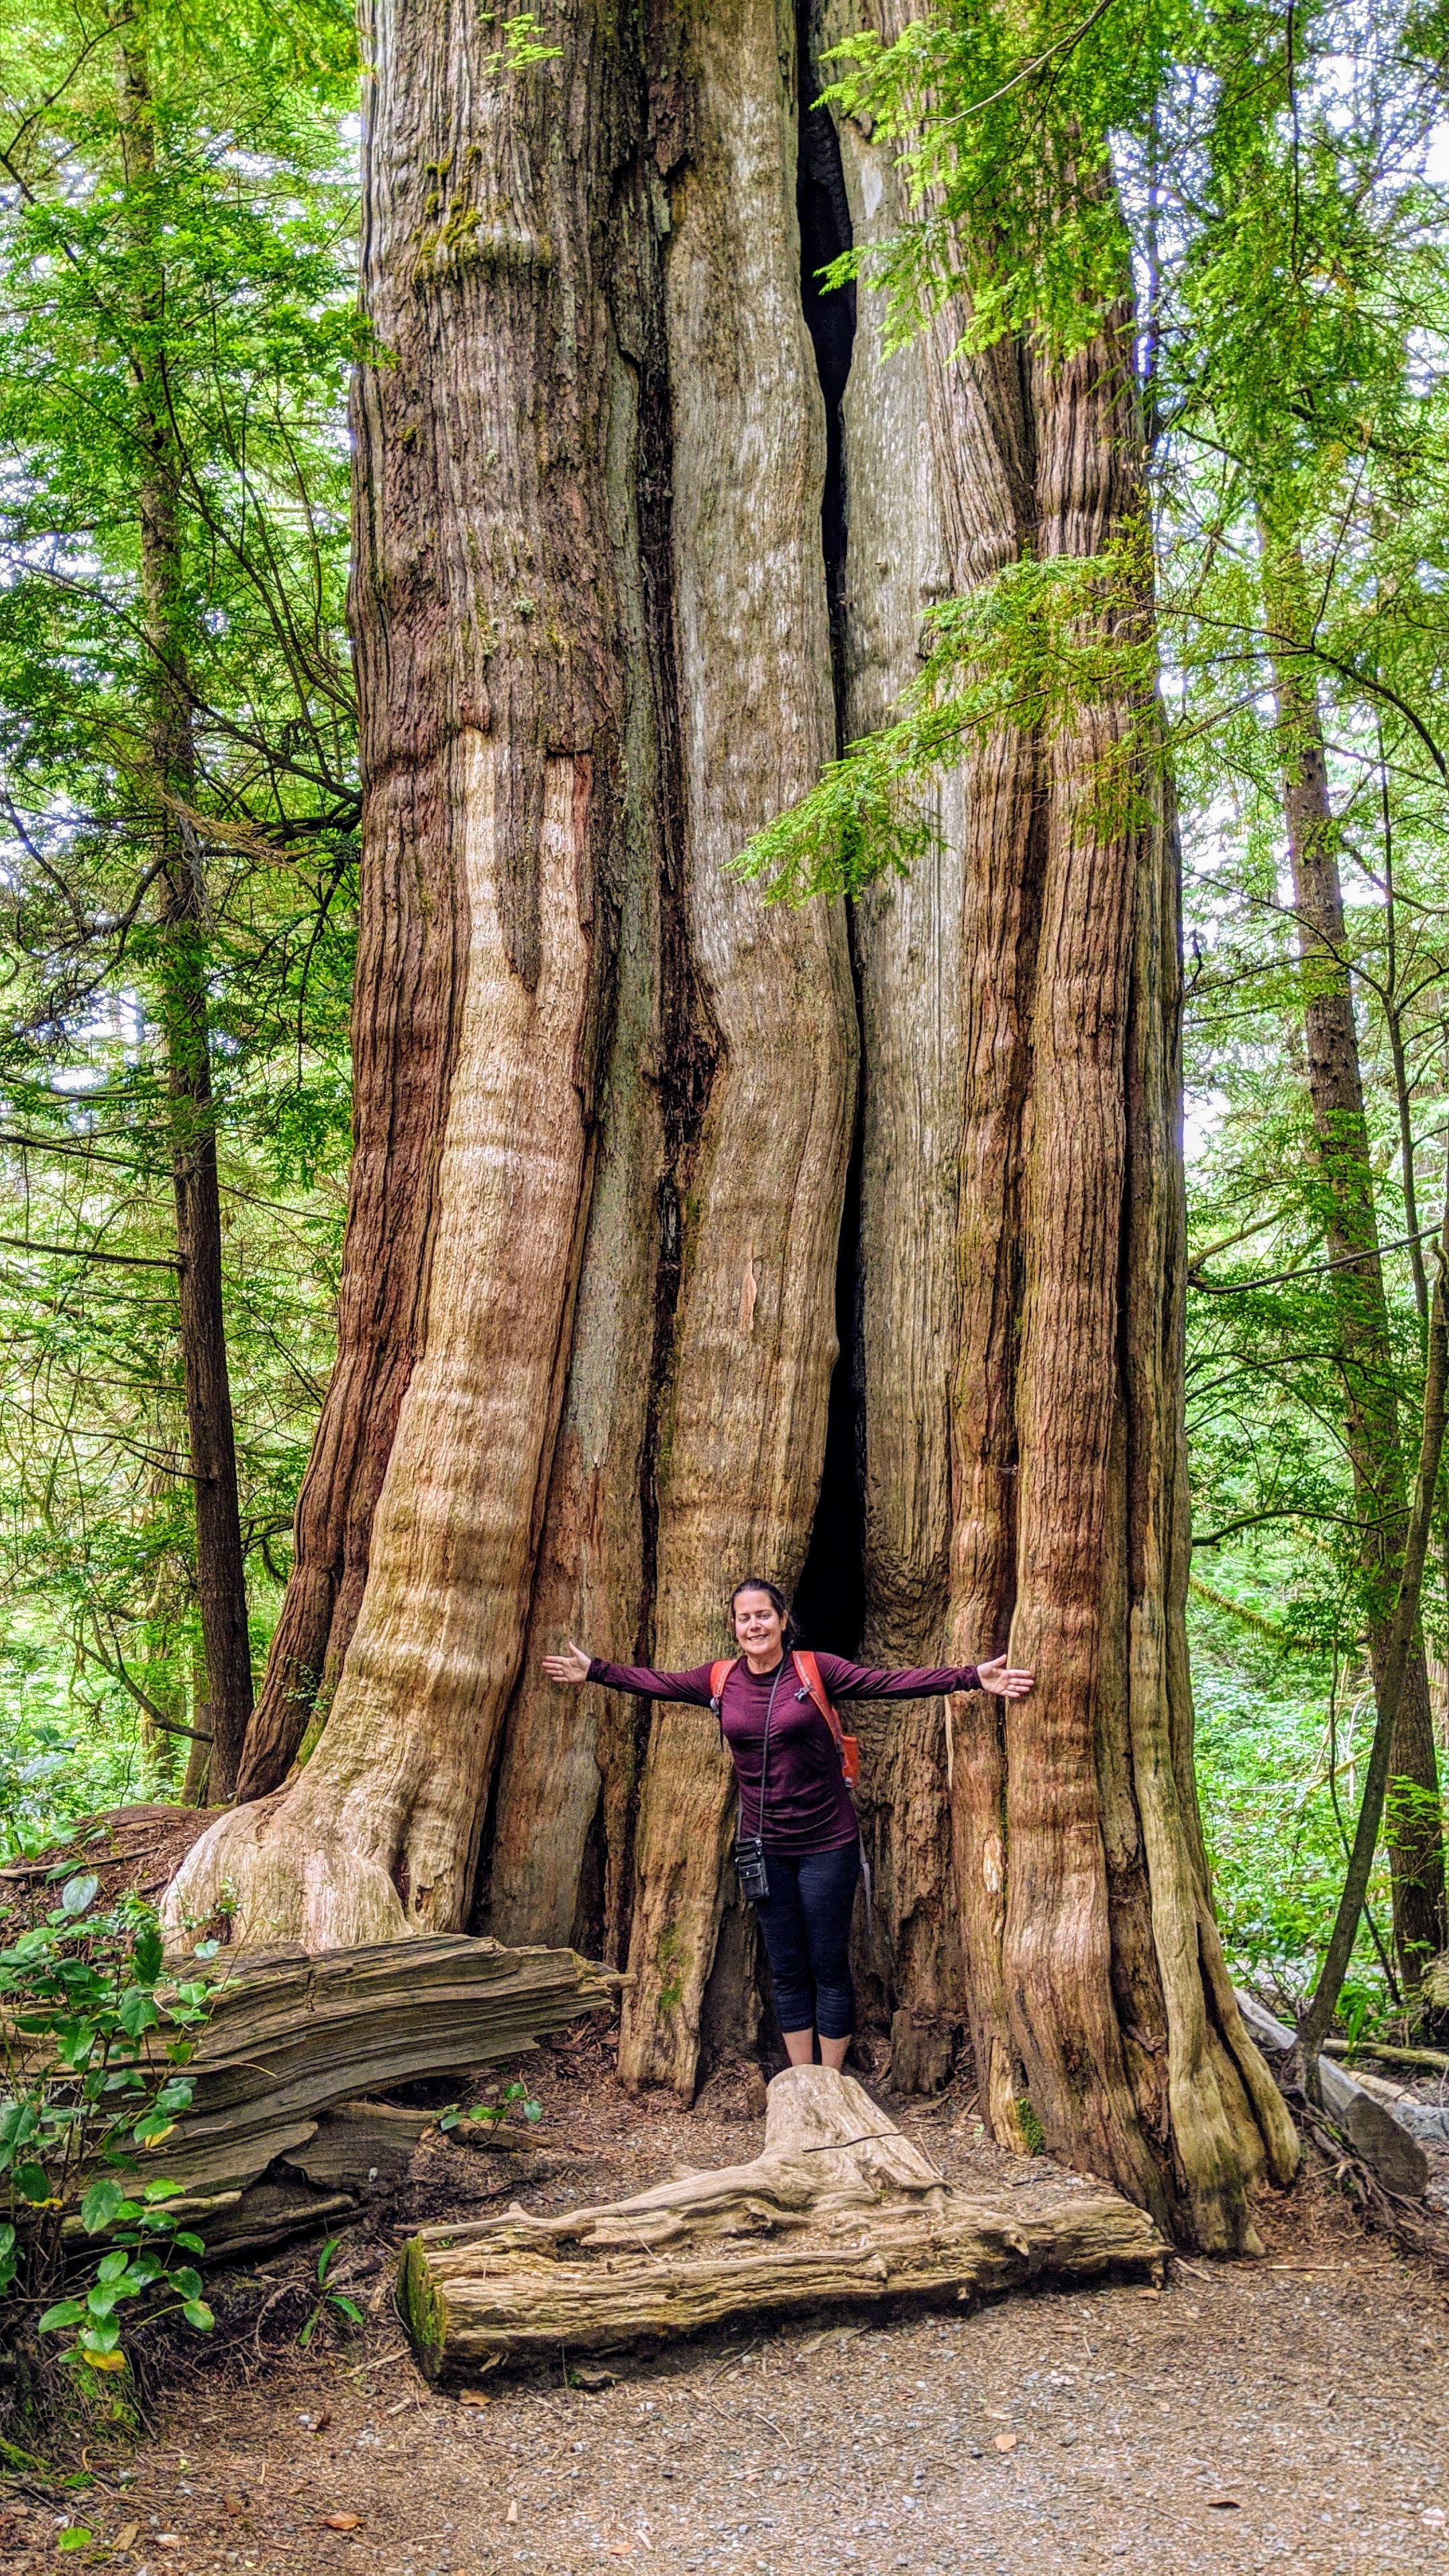 Max with one of the Ancient Cedars on the Wild Pacific Trail